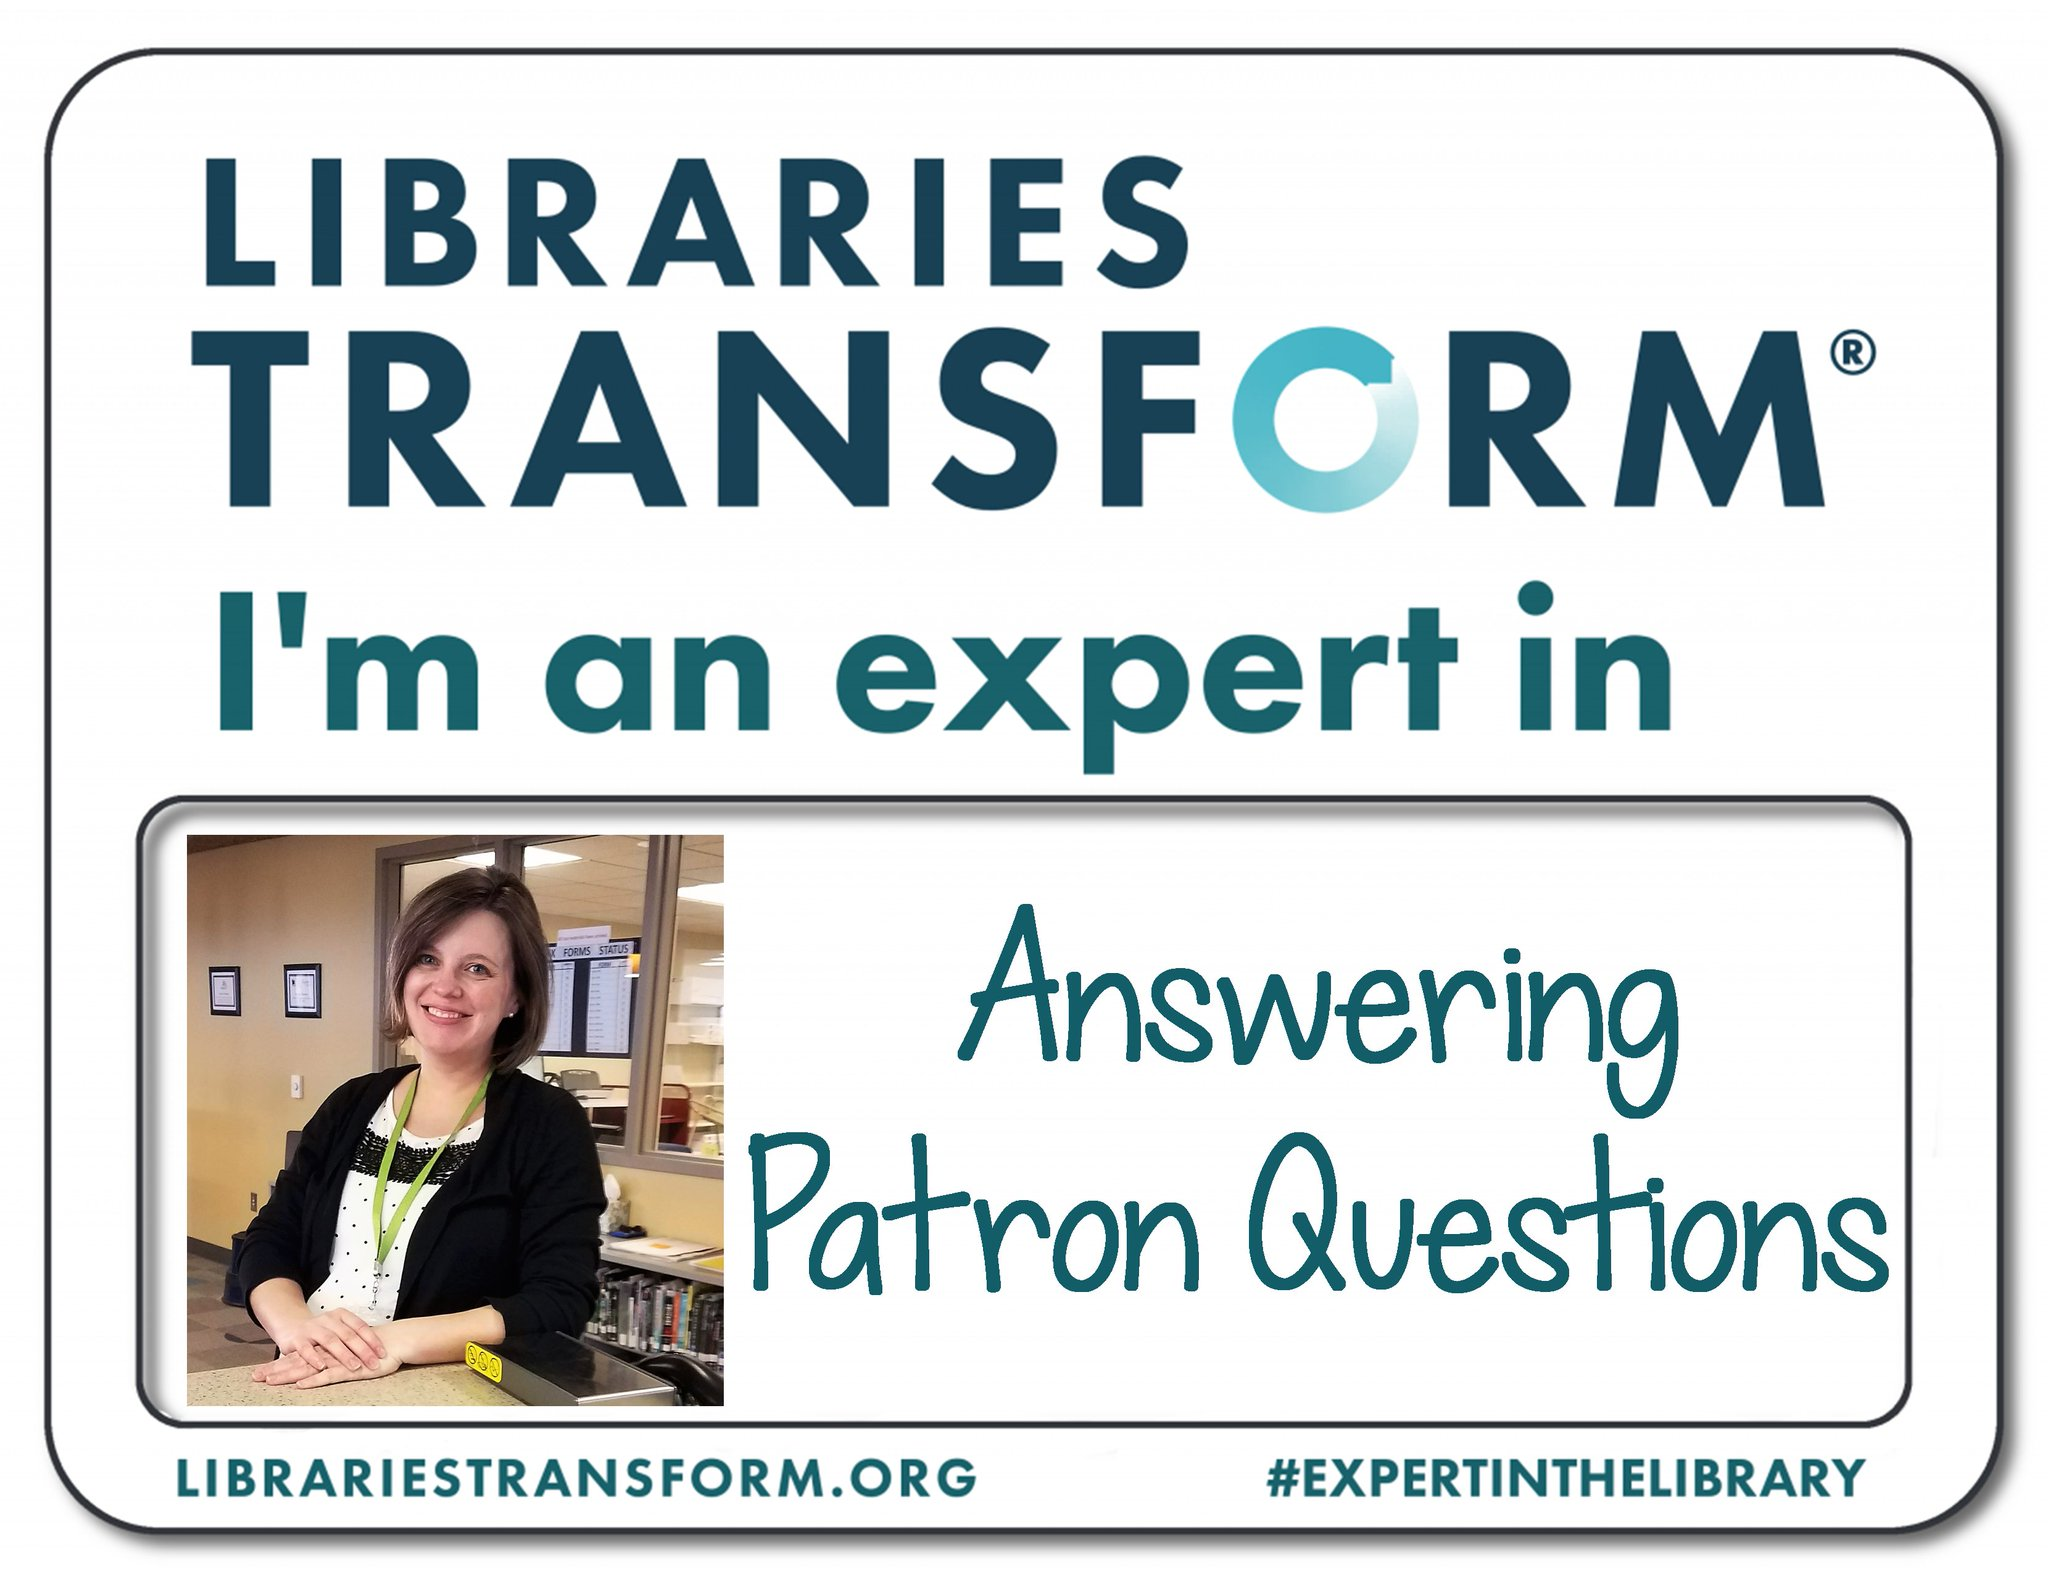 Celebrate #NationalLibraryWeek with us! Meet Sarah, an #ExpertInTheLibrary at KPL. https://t.co/Tg3Kzig00g